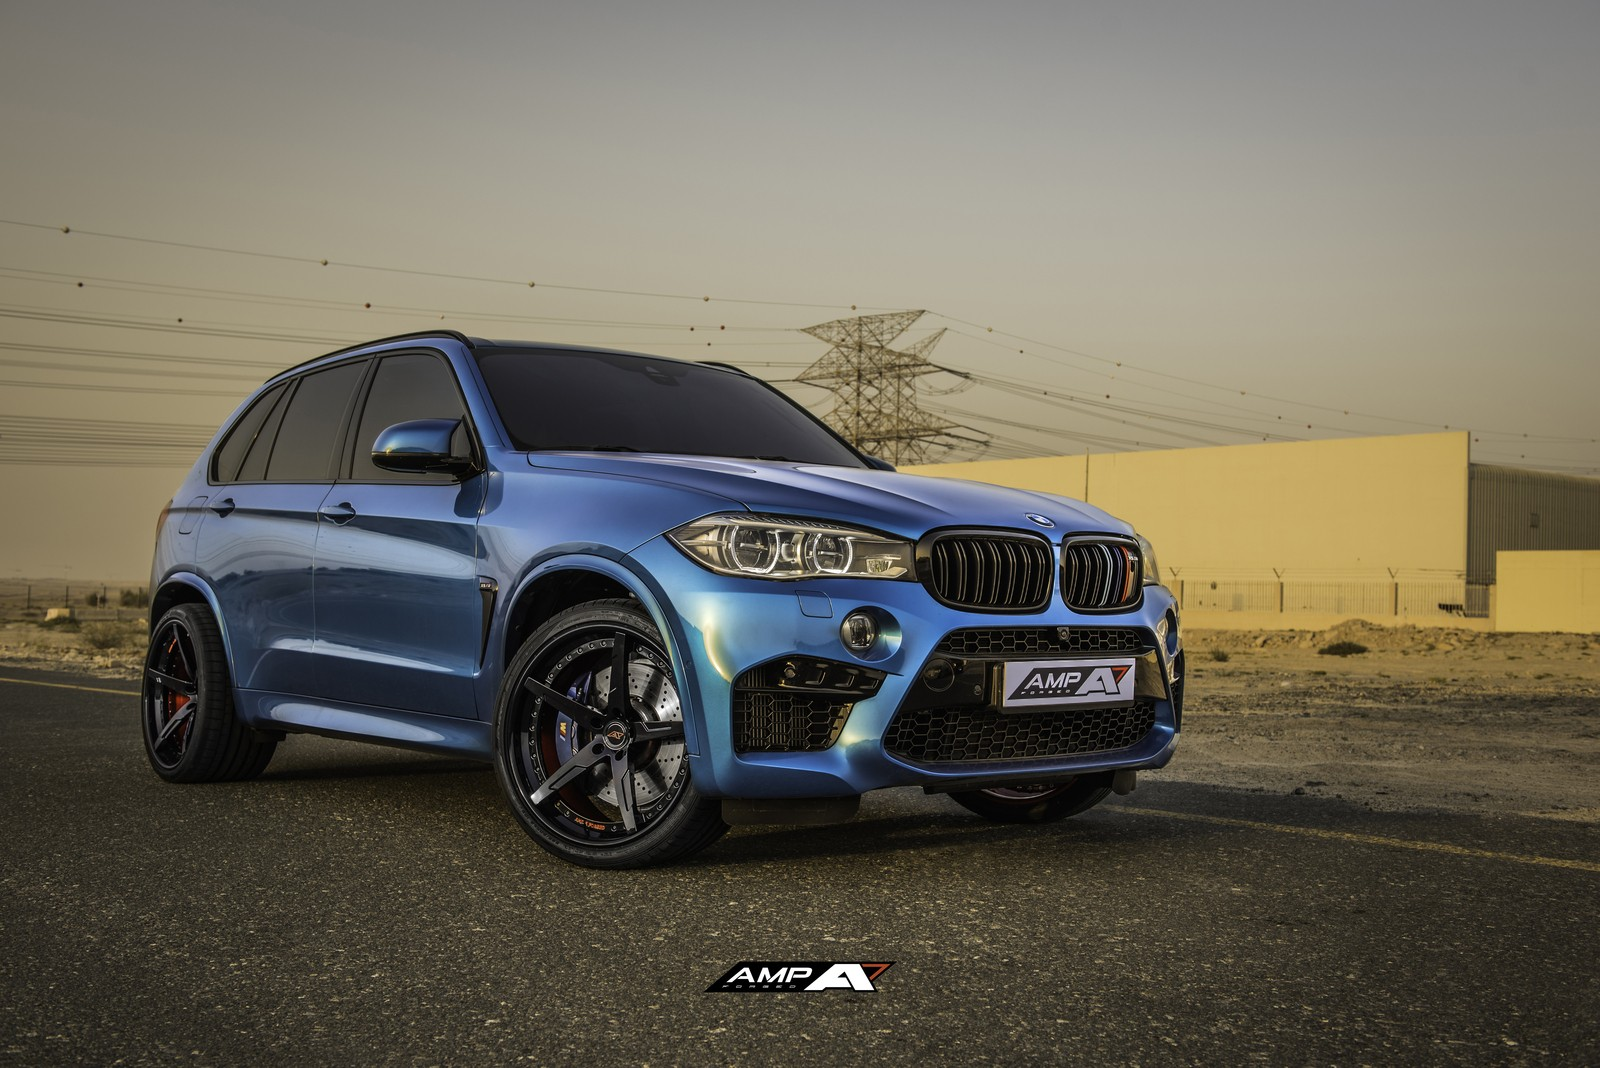 2016 Bmw X5 M On 22 Inch Amp Forged Wheels